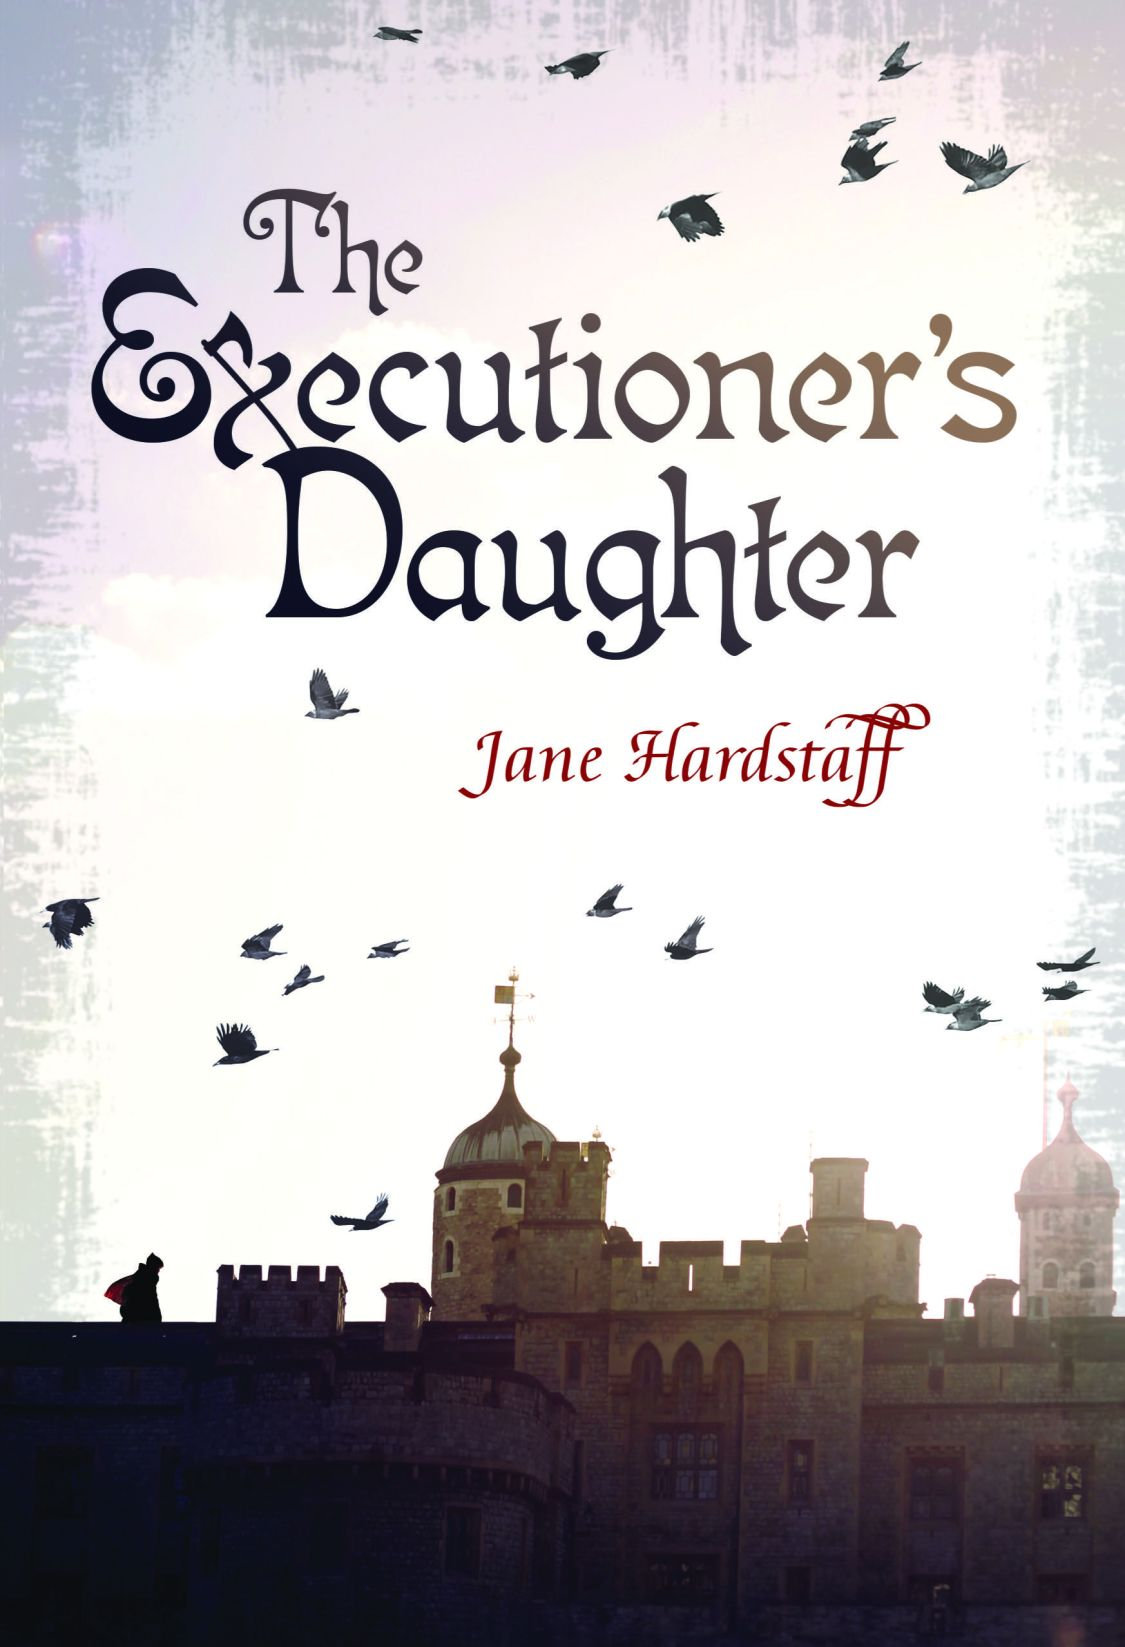 The Executioner's Daughter, published by Lerner Books